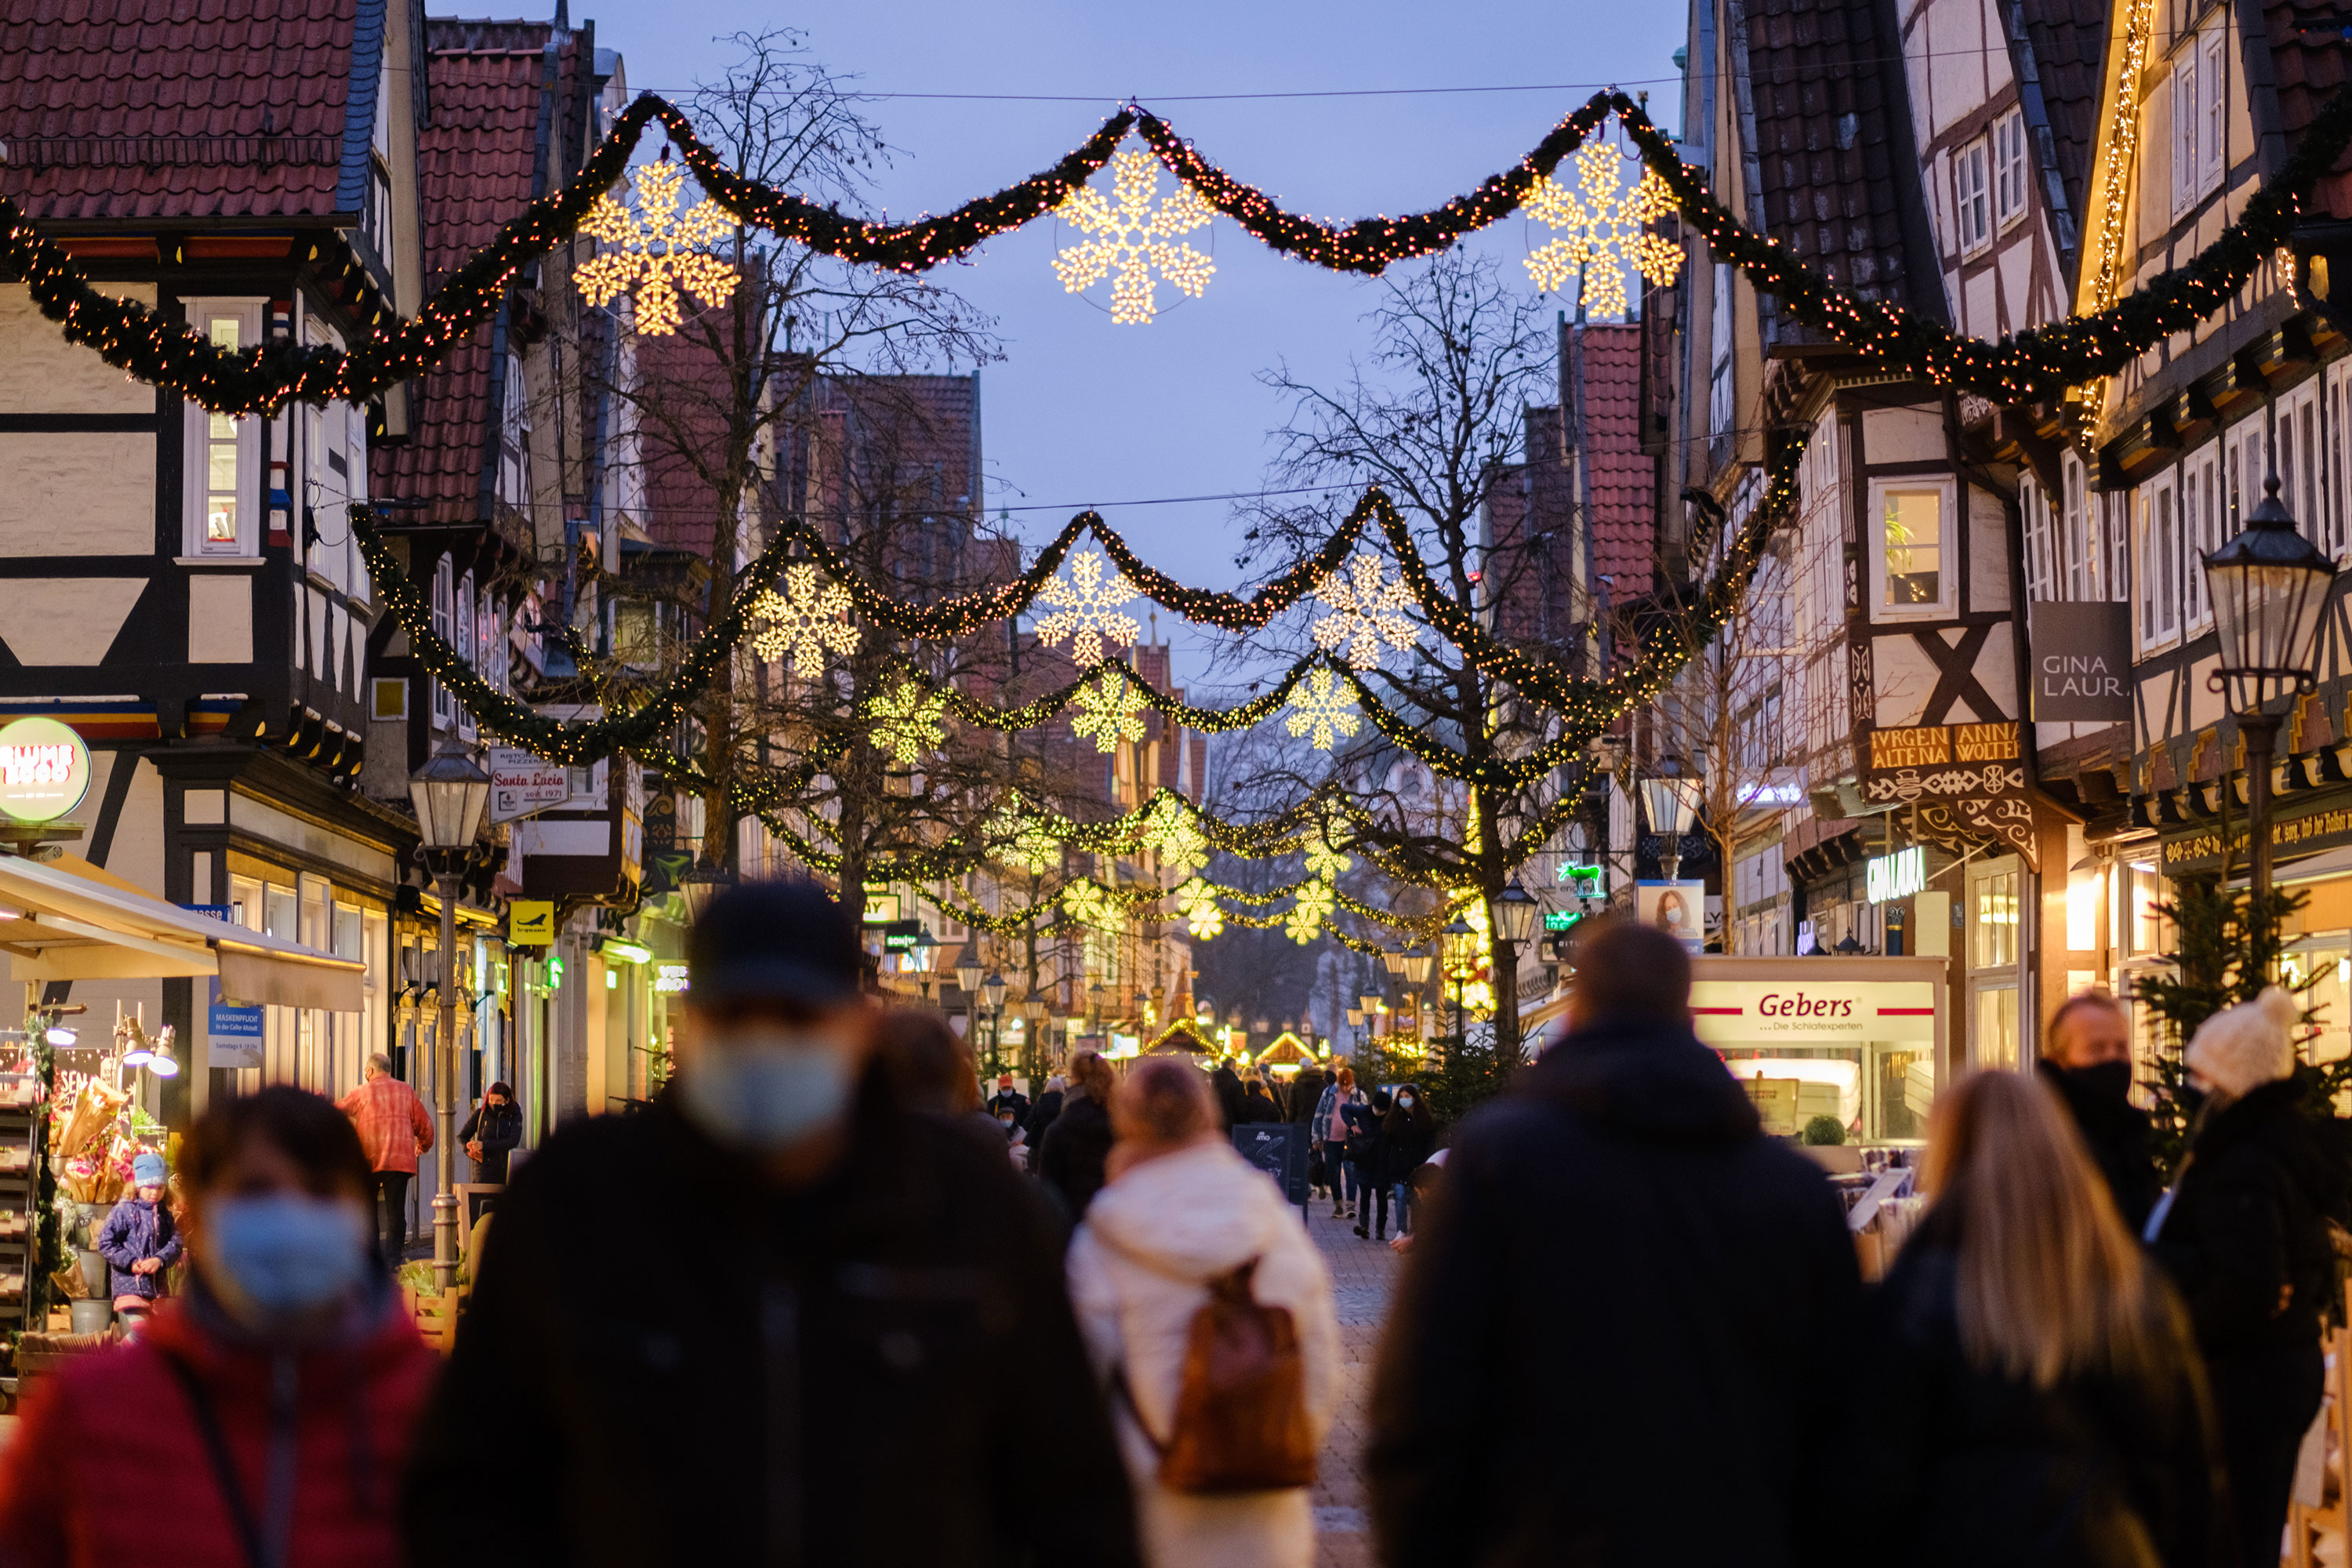 People walk through a decorated city center in Celle, Germany, on December 12.